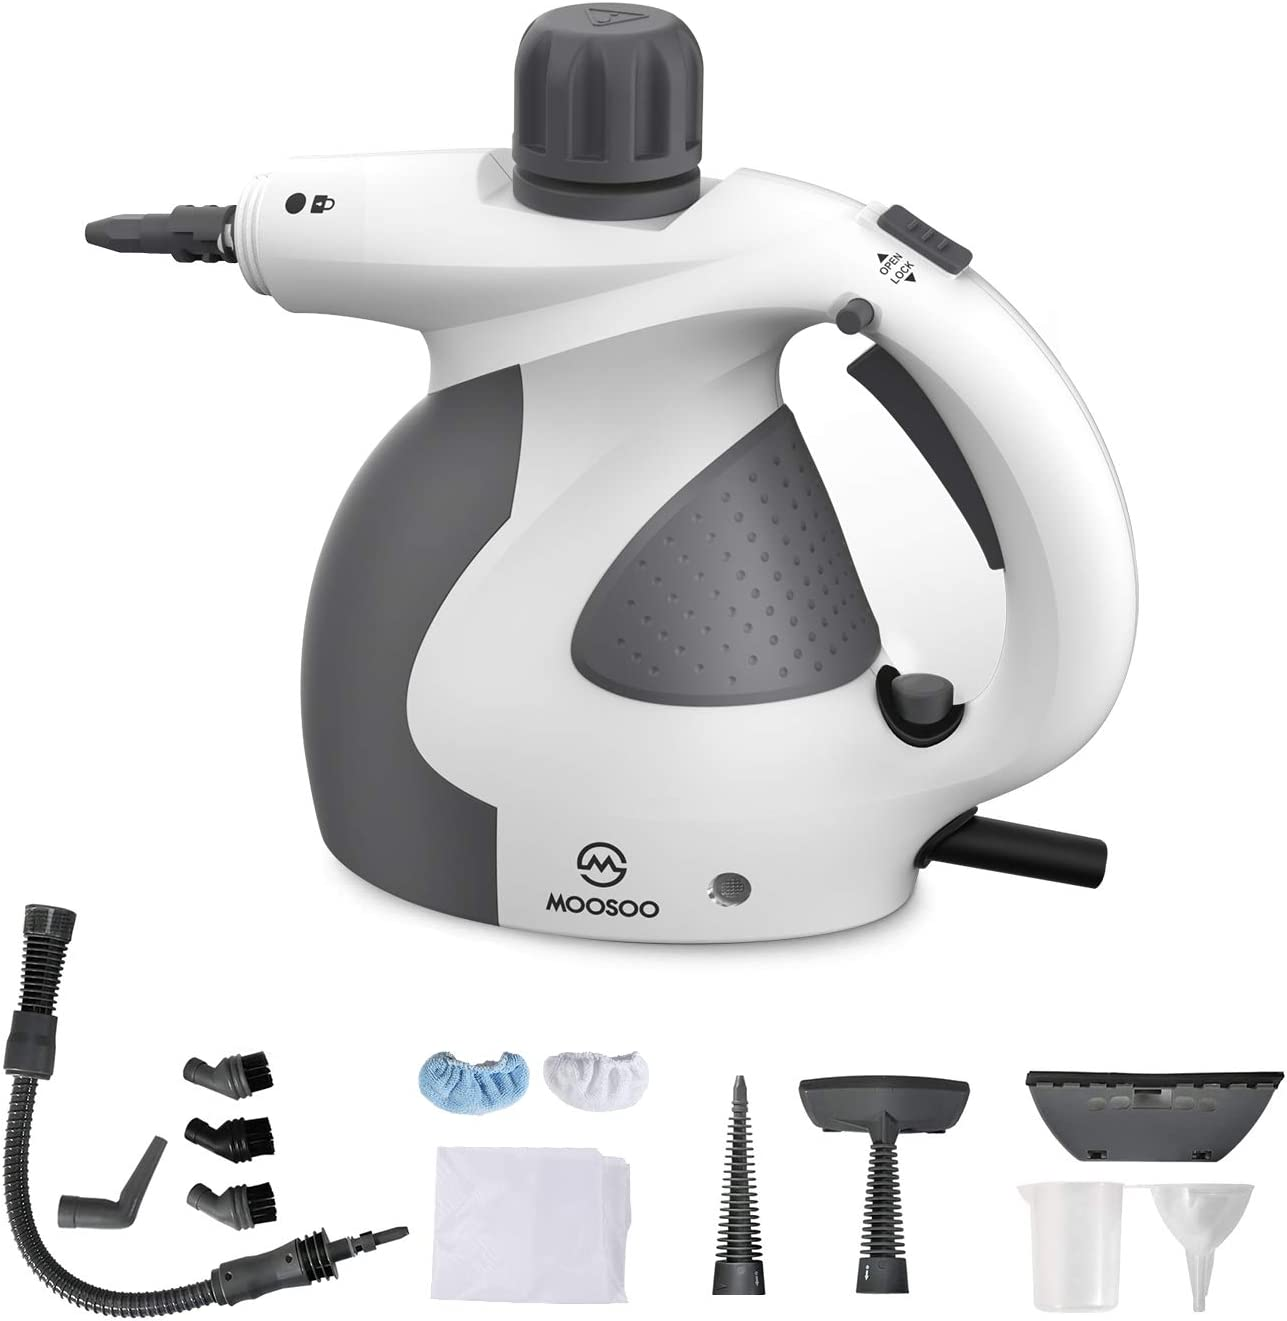 MOOSOO Steam Cleaner, Multi-Purpose Steam Cleaner for Home Use, Handheld Steamer with Various Accessories Accessories, Ideal for Upholstery, Carpet, Toilet, Bathroom, Auto SC1000 with Storage Bag